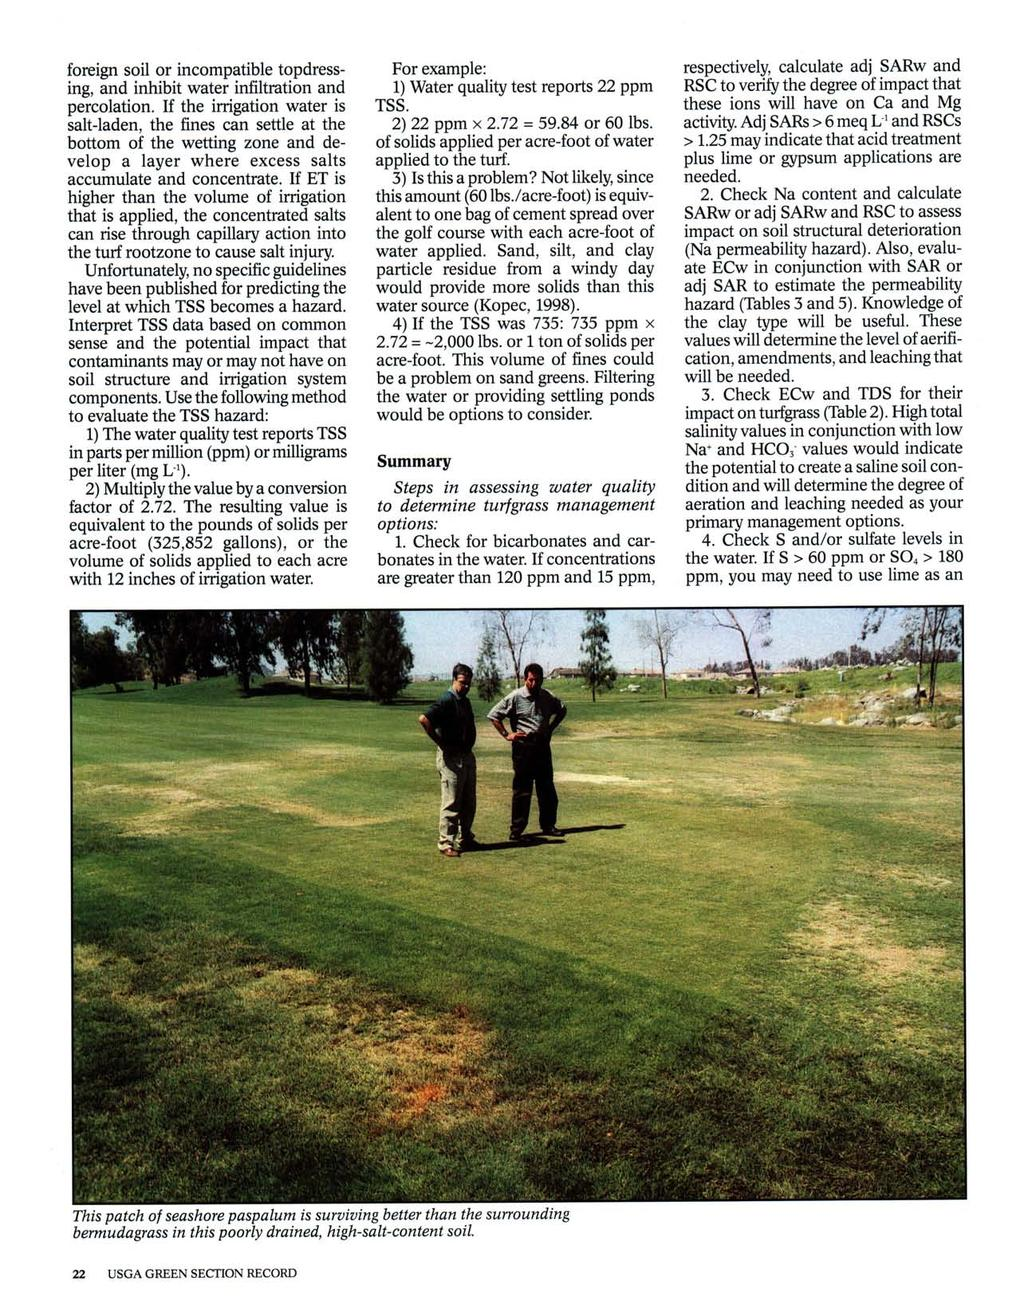 foreign soil or incompatible topdressing, and inhibit water infiltration and percolation.